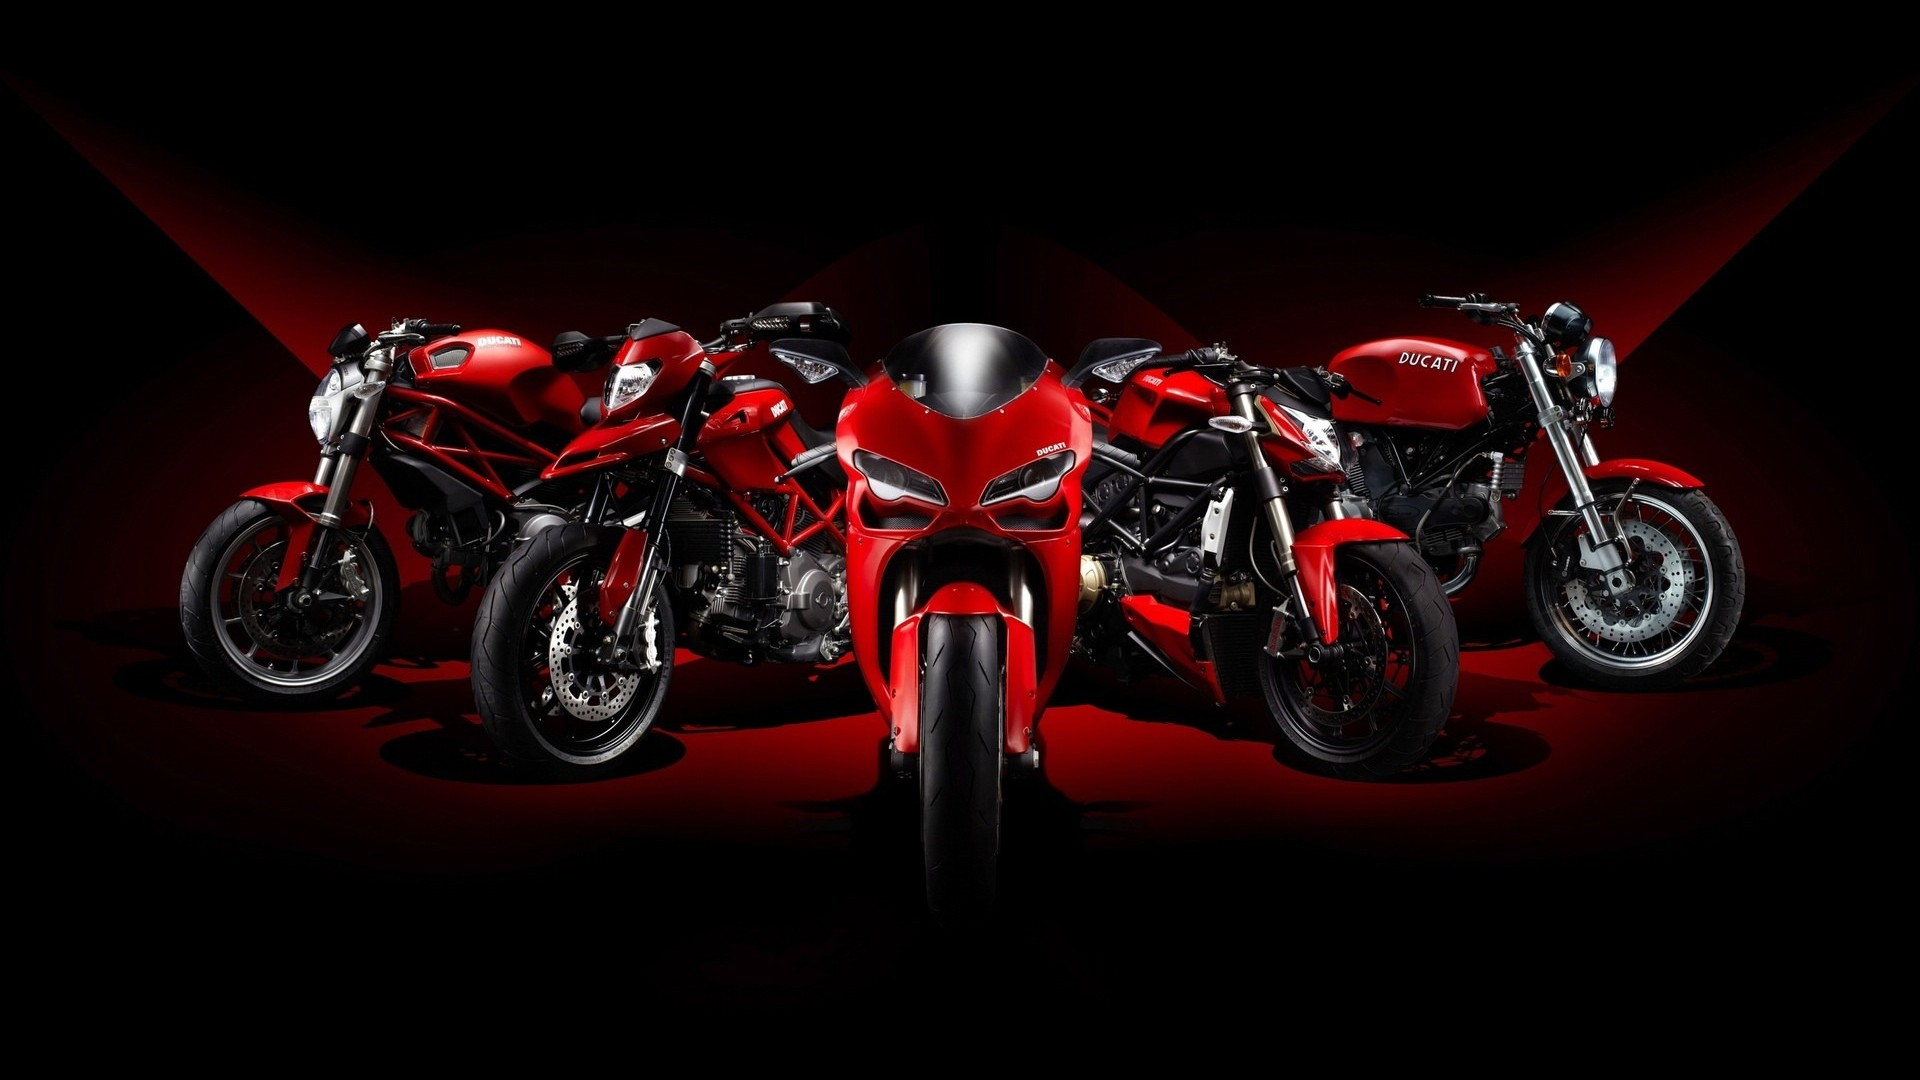 47 Cool Bike Wallpapers Backgrounds In Hd For Free Download